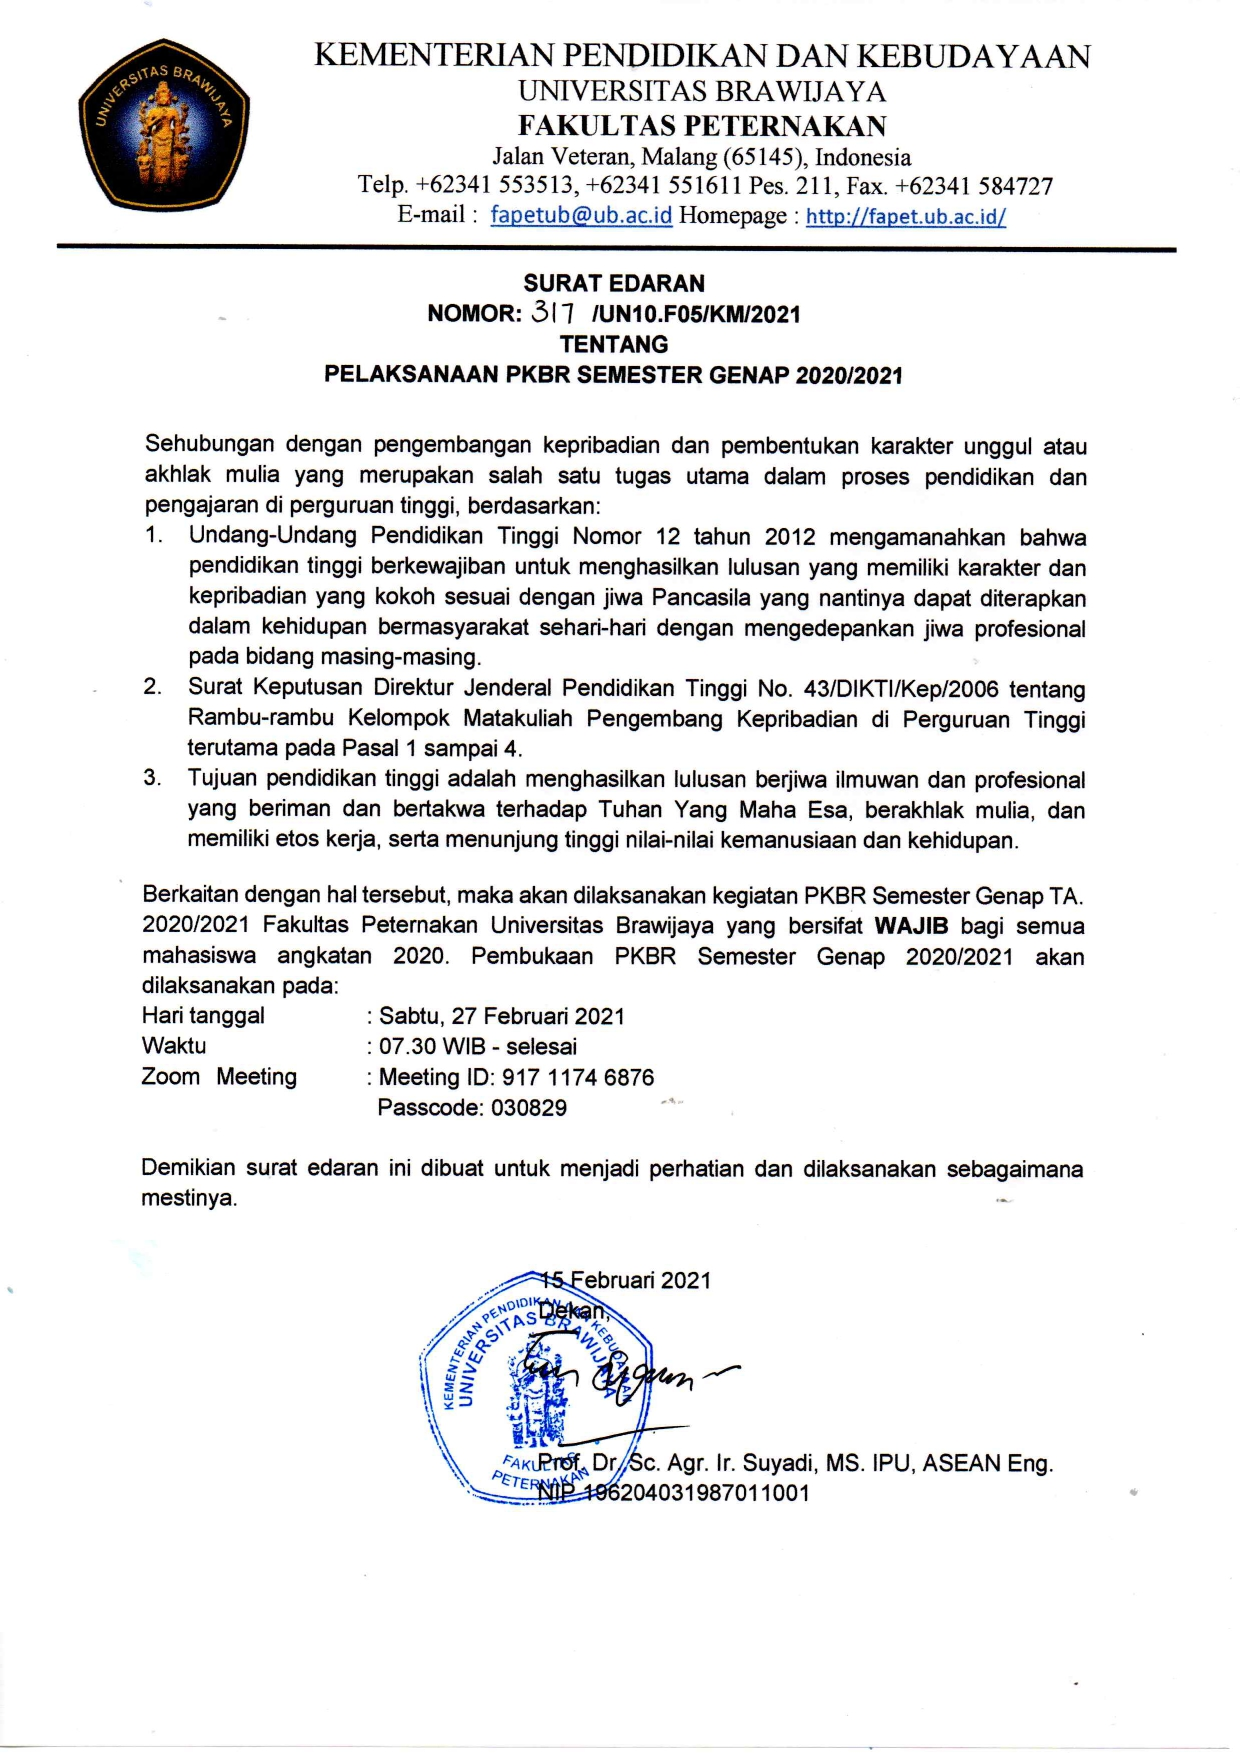 The Circular for the Implementation of the PKBR Even Semester 2020/2021